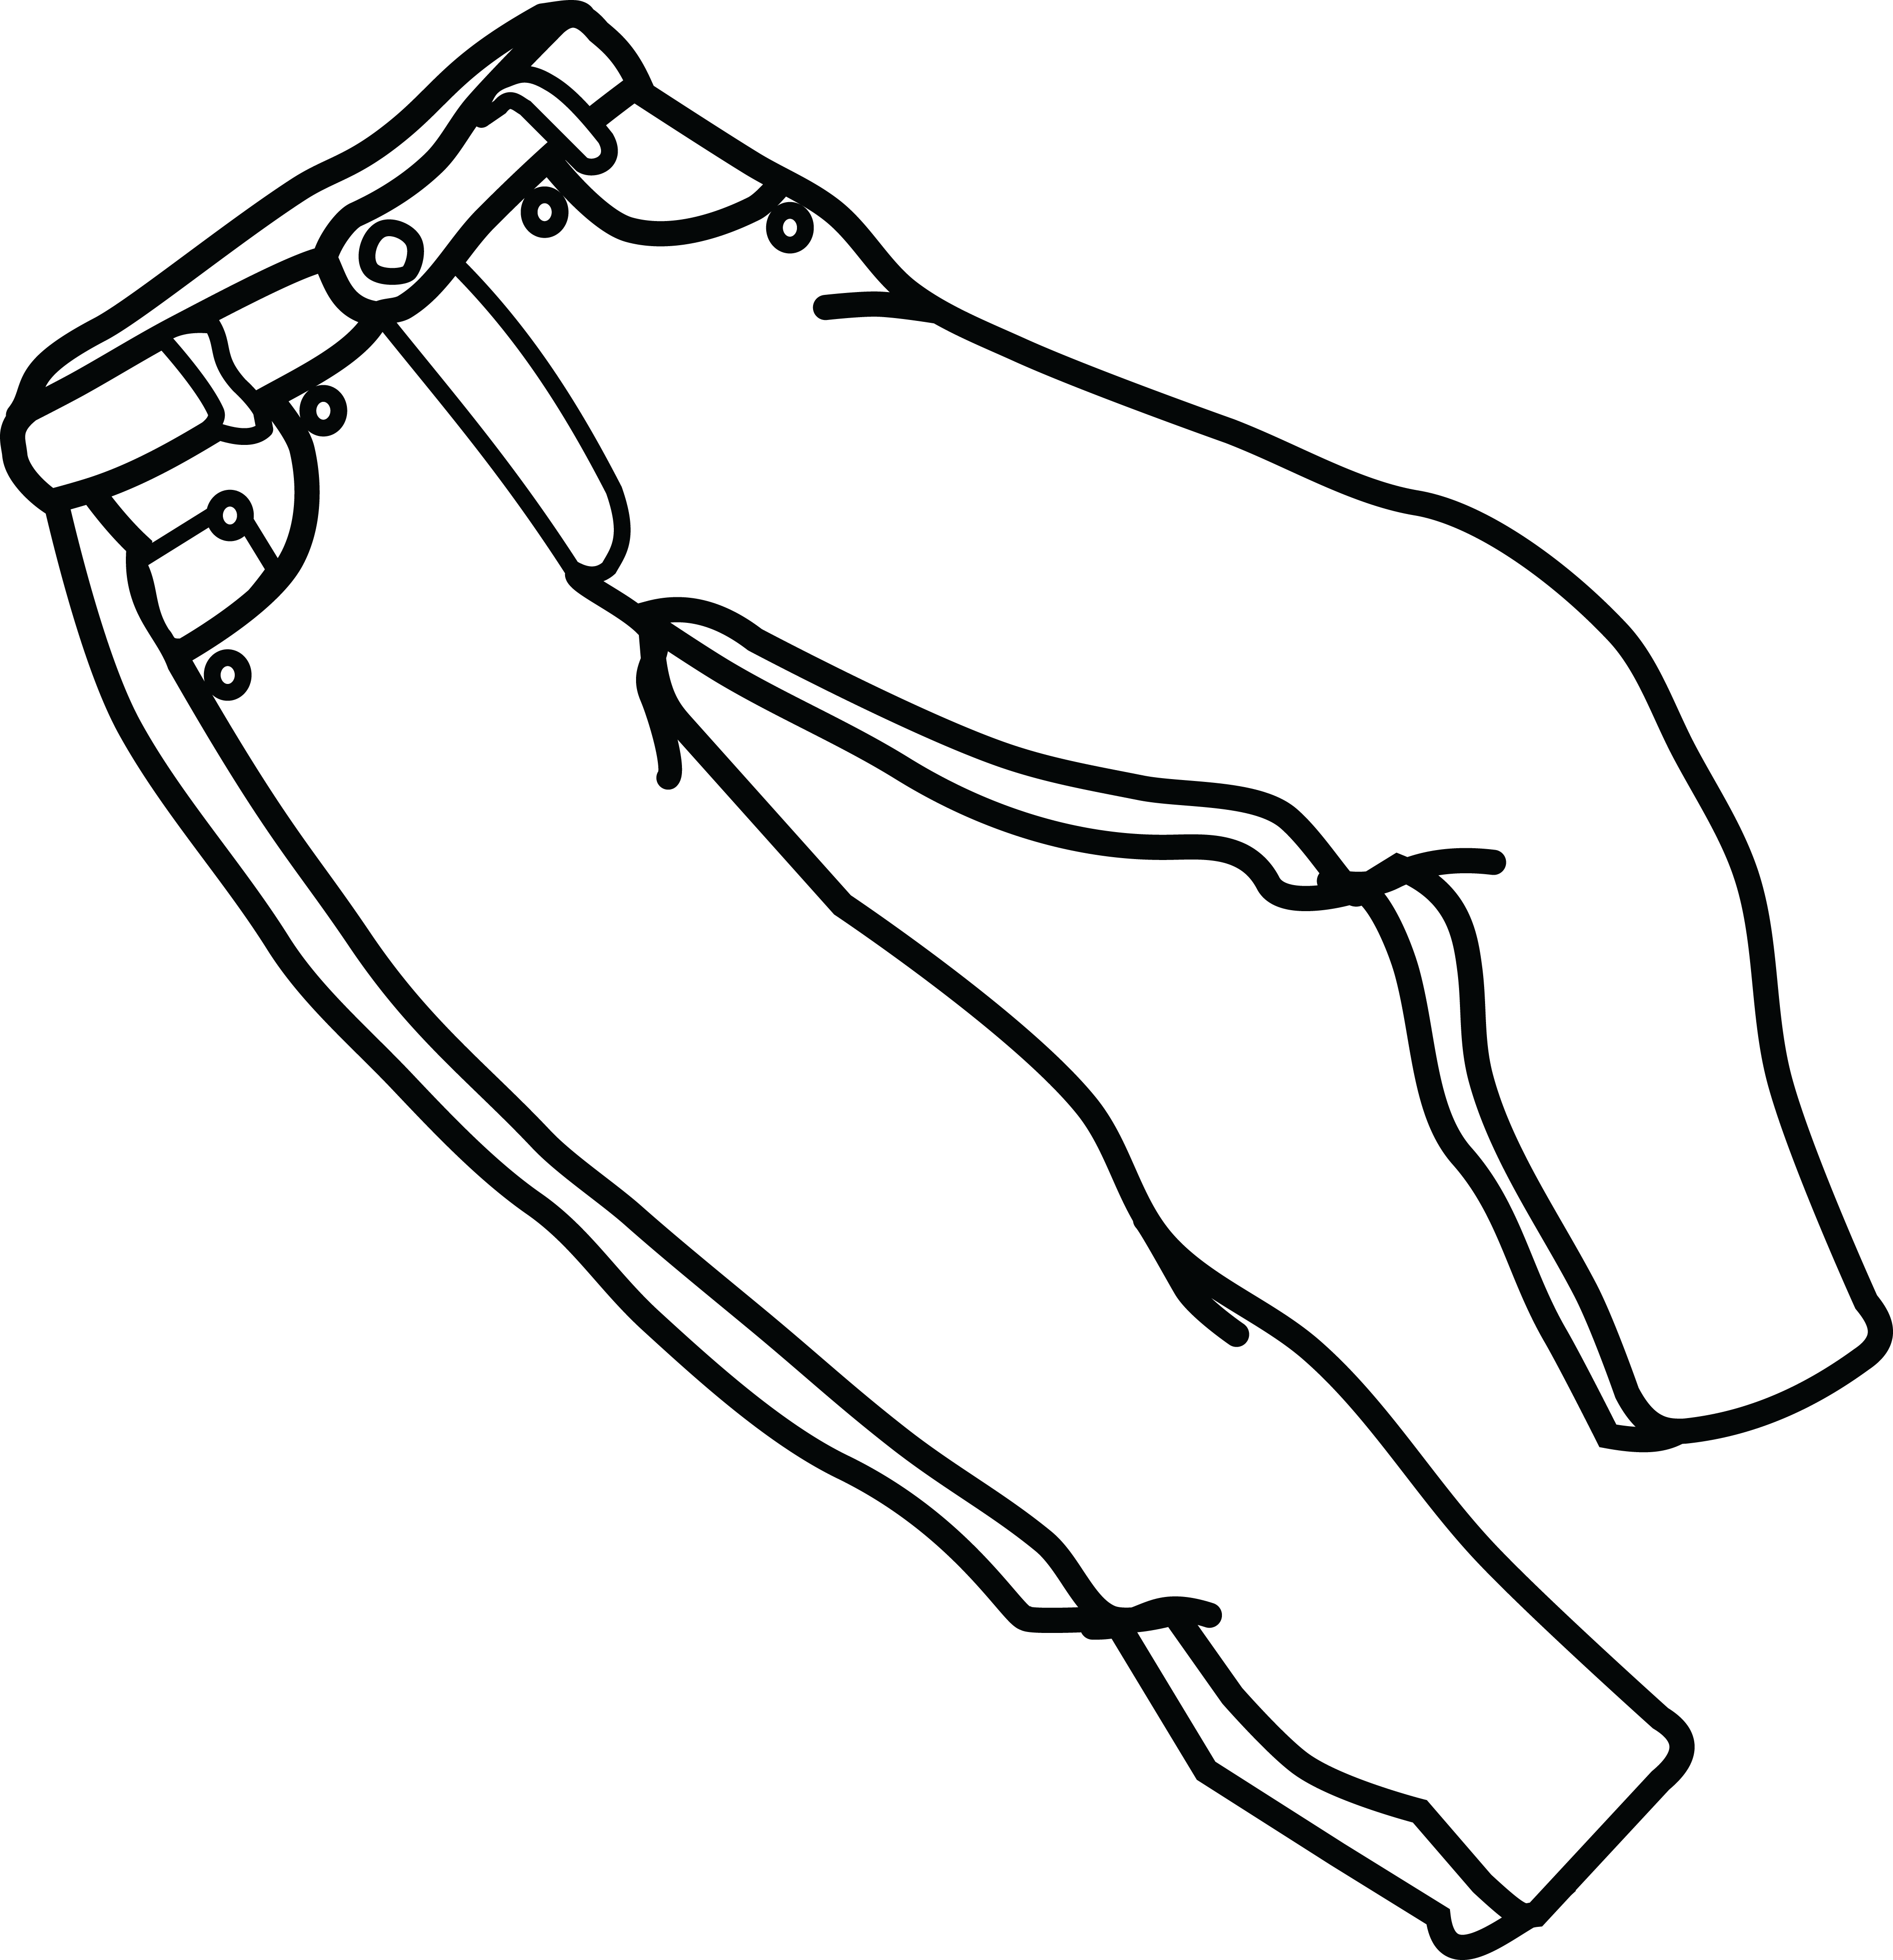 Free Clipart Of A pair of jeans #00011288 .